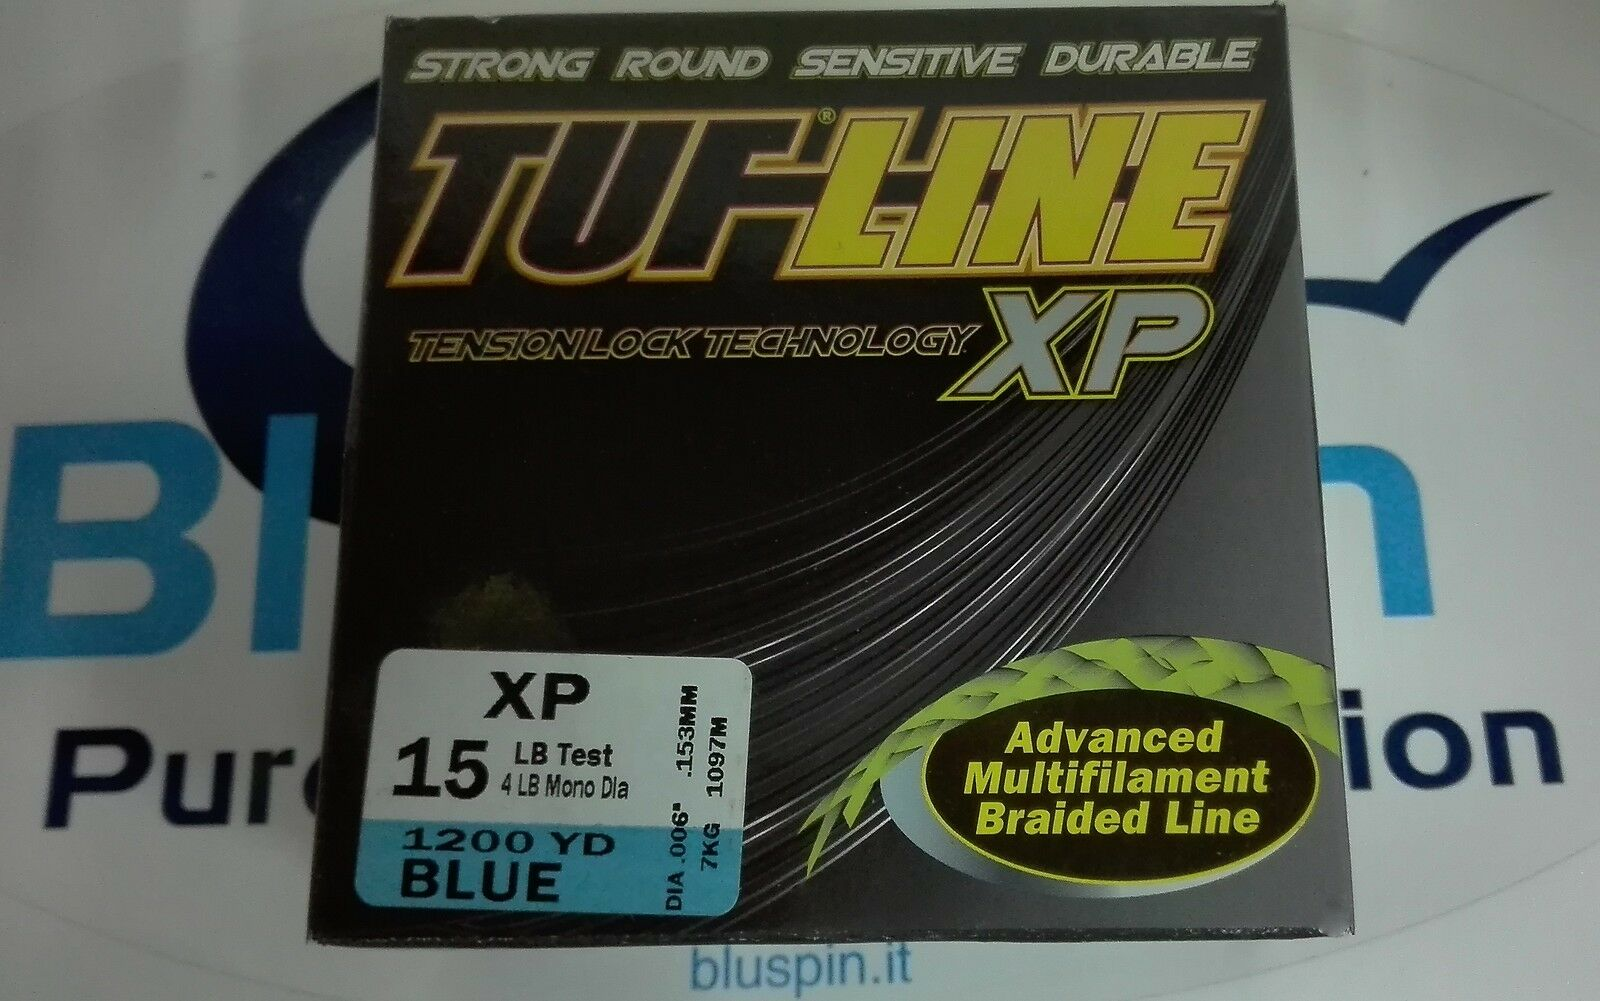 NEW TUFLINE XP ADVANCED BRAIDED LINE 15LB 1200YDS MADE  IN USA COL. blueE  first-class quality